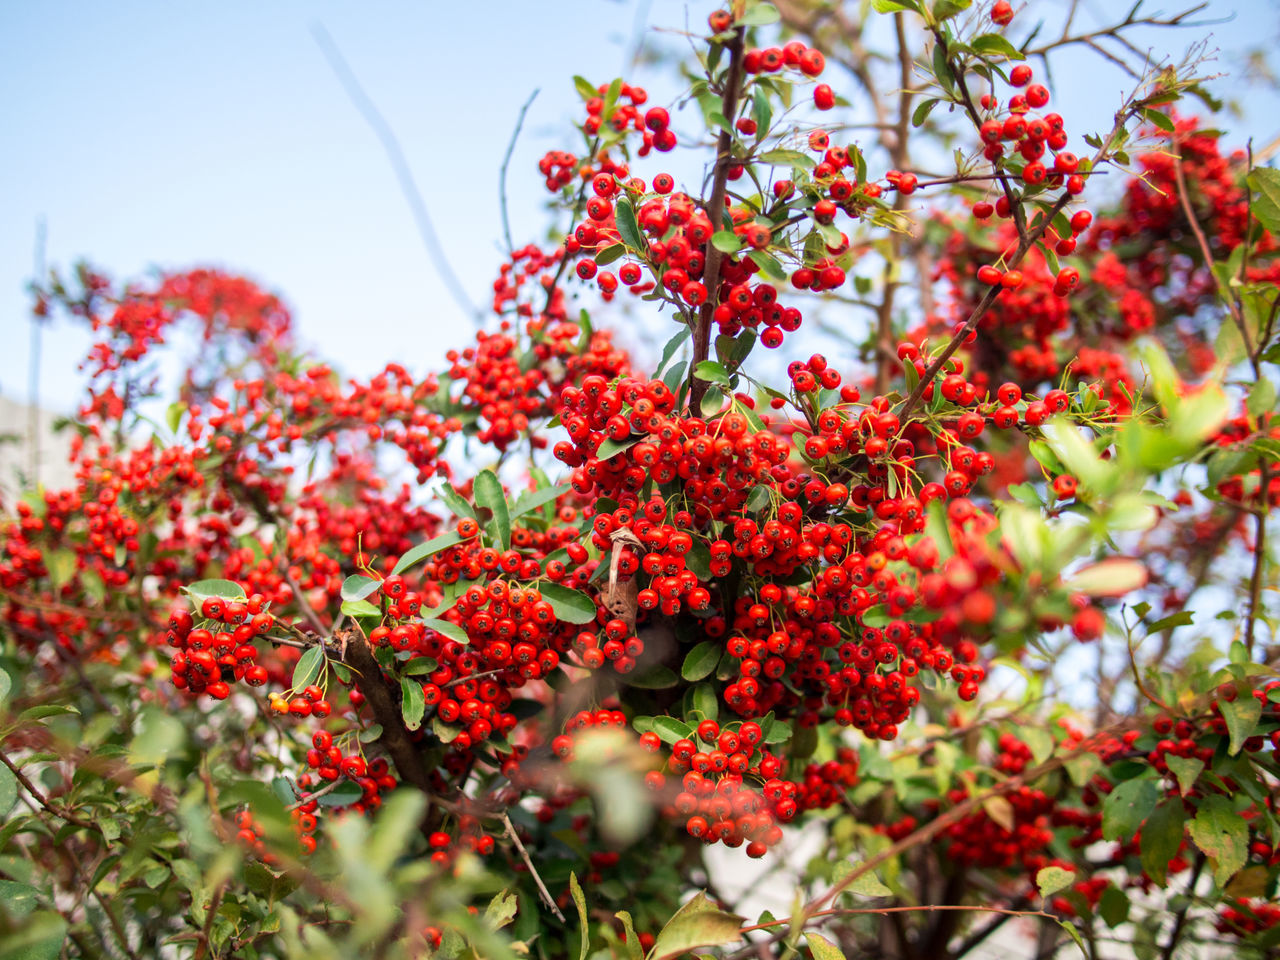 Beauty In Nature Bokeh Photography Branch Close-up Crimea,Russia Day Freshness Gawlet Growth Low Angle View Nature No People Outdoors Red Rowanberry Sevastopol  Tree